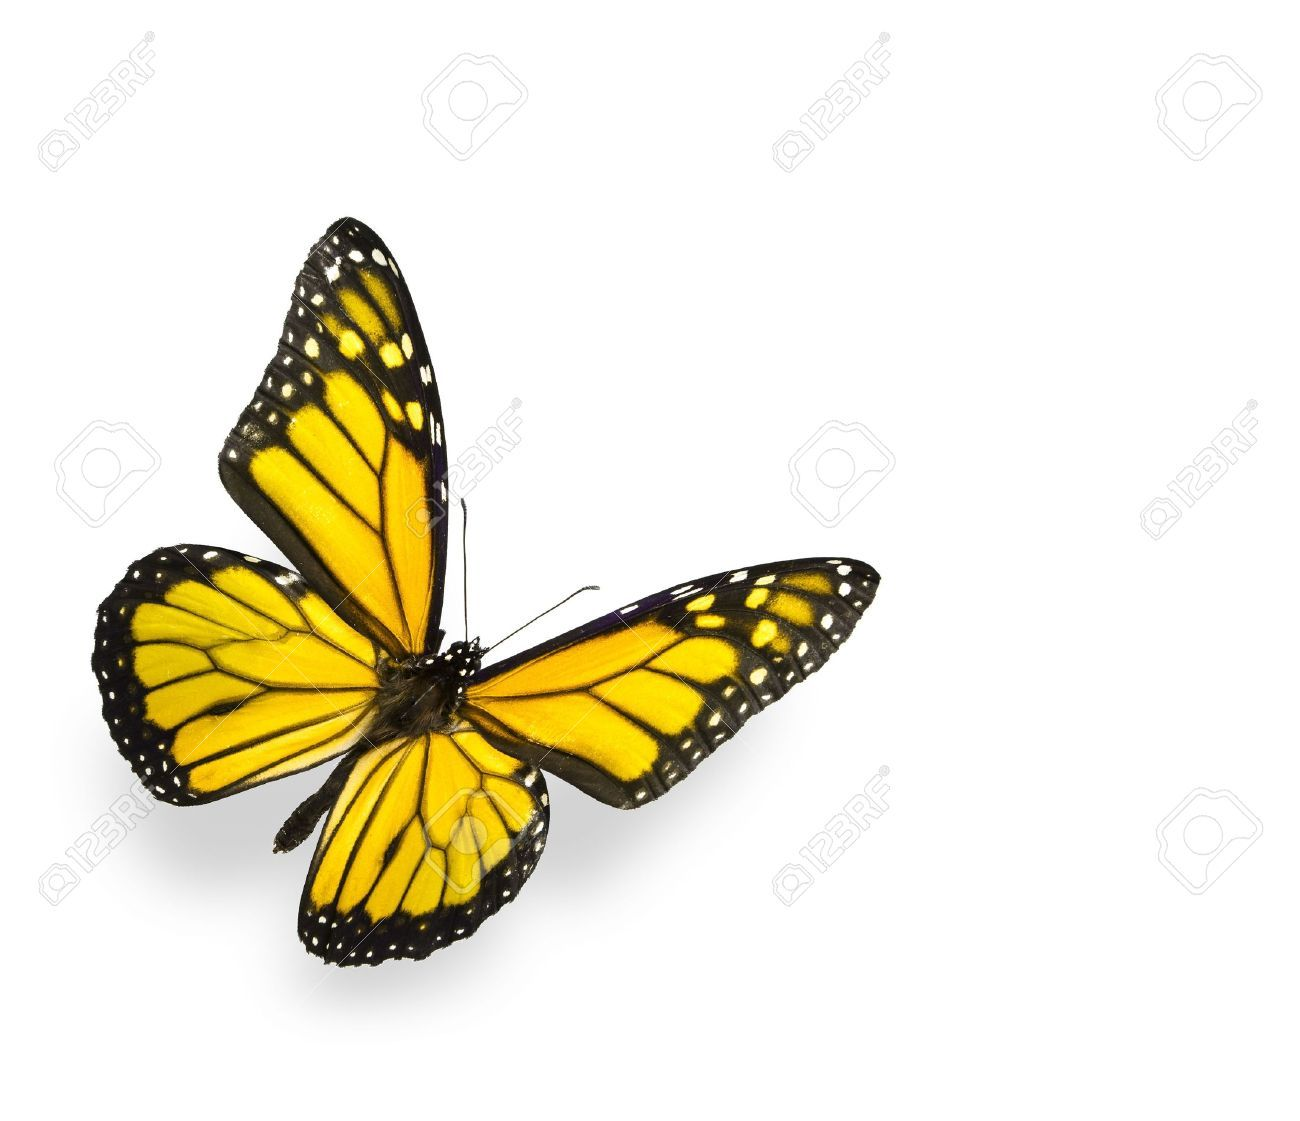 Photo of Bright Yellow Butterfly Isolated on White